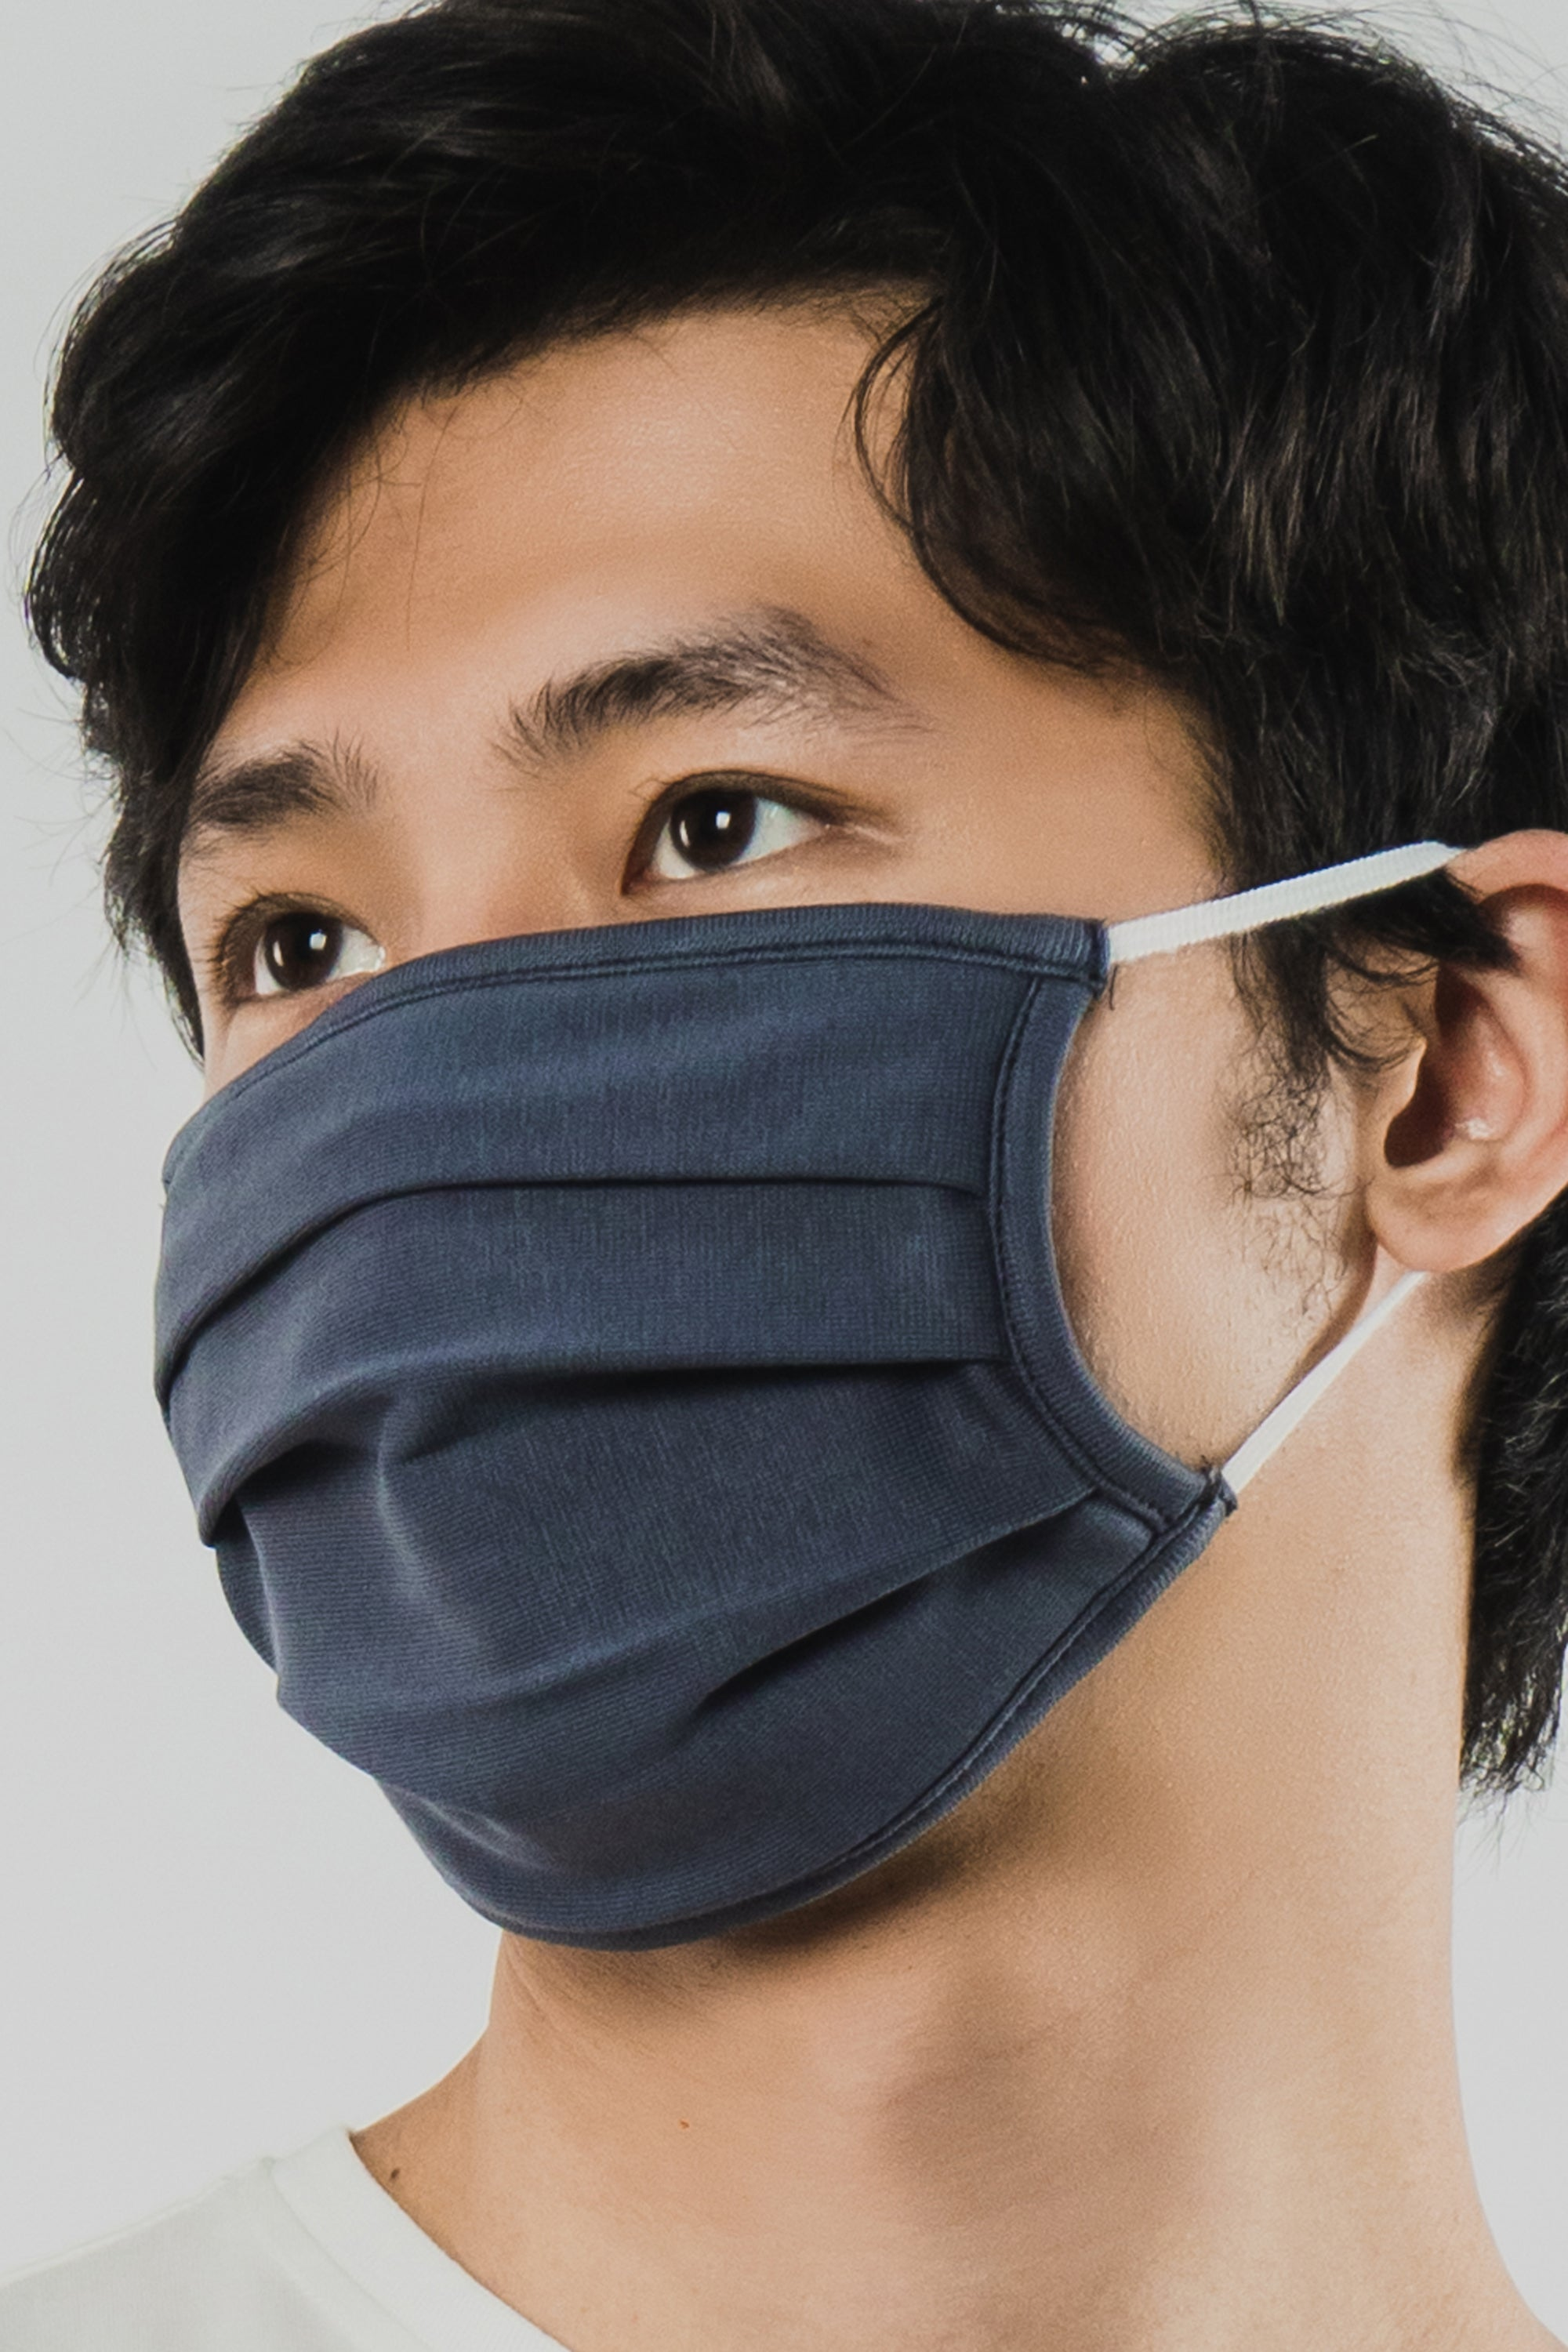 Load image into Gallery viewer, GREY FACE MASK - 2 Ply Cotton Mask